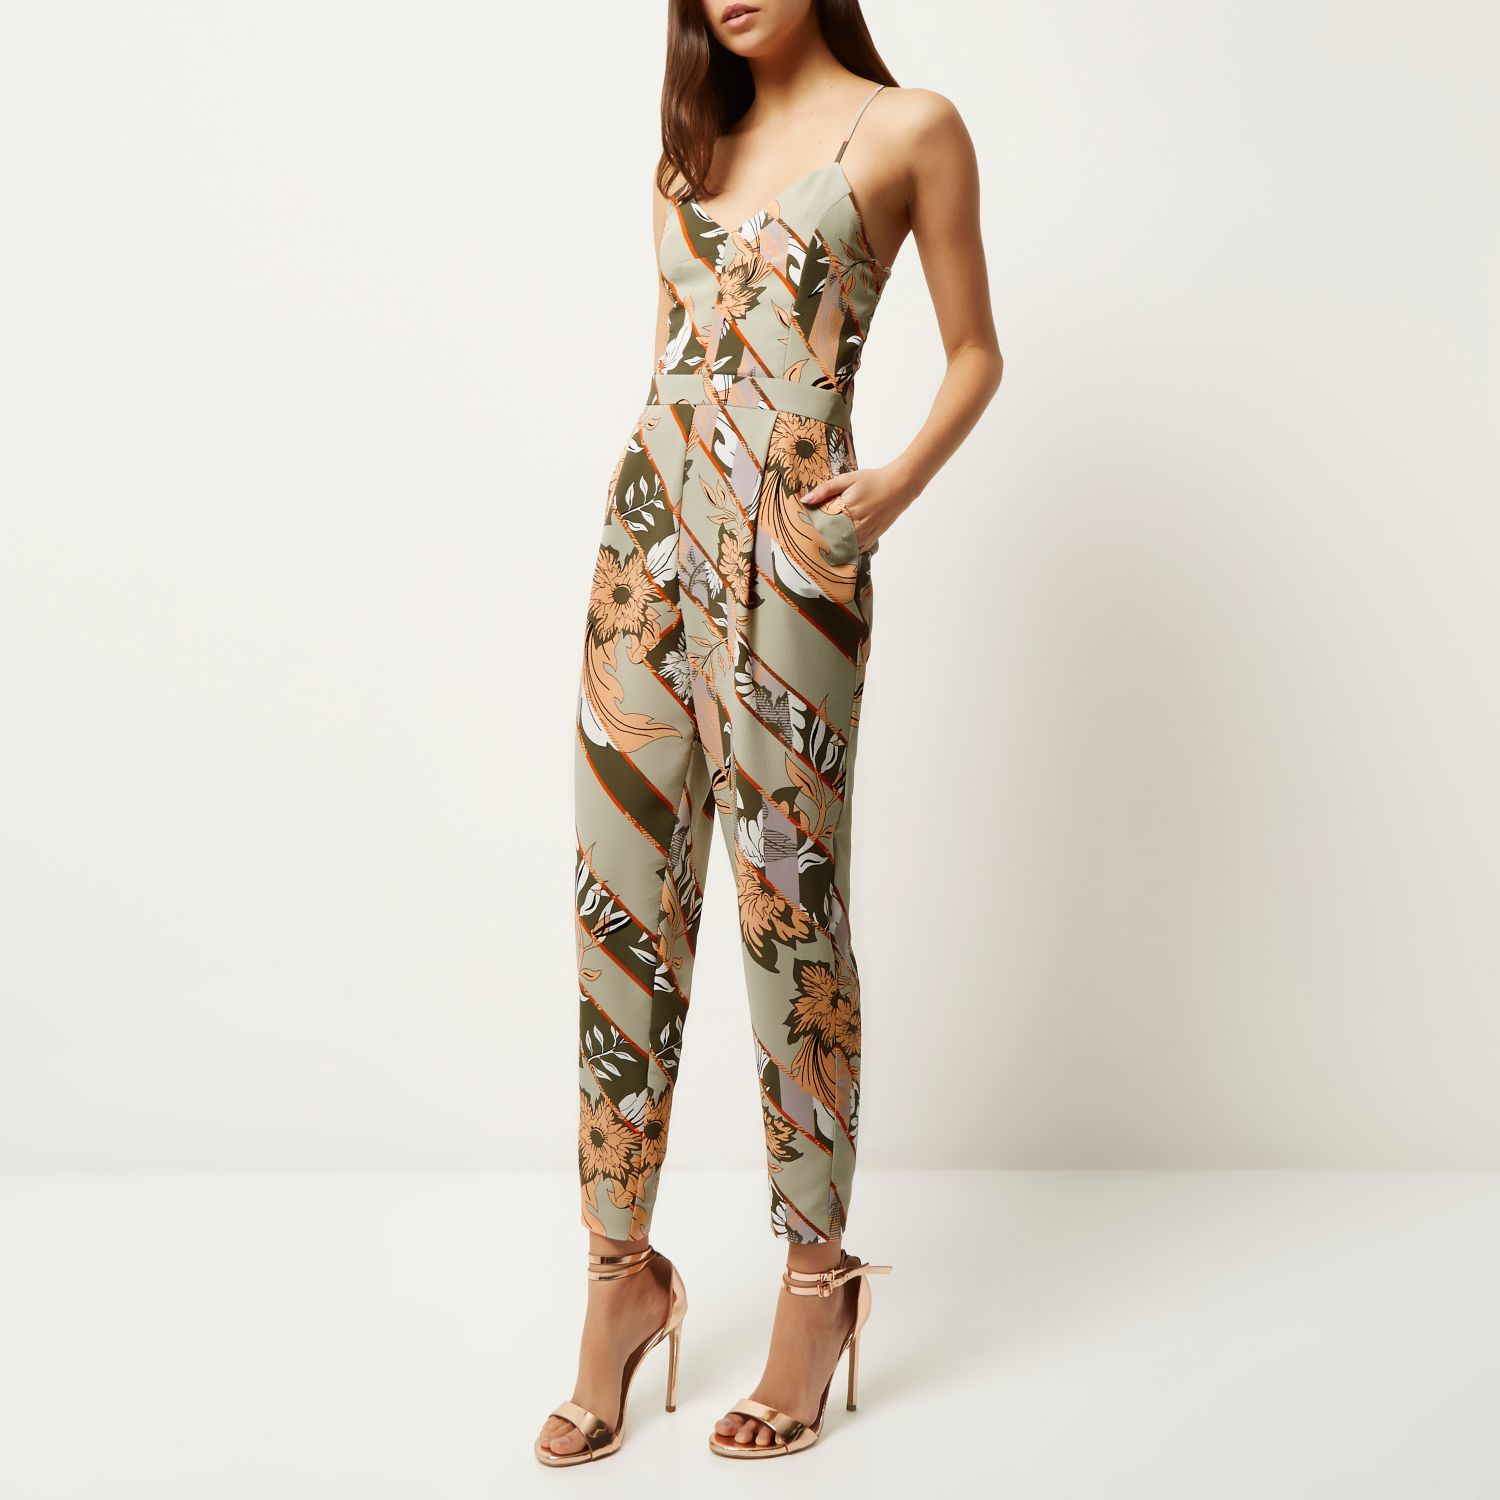 7f877d09877f Lyst - River Island Green Floral Print Tapered Jumpsuit In Green